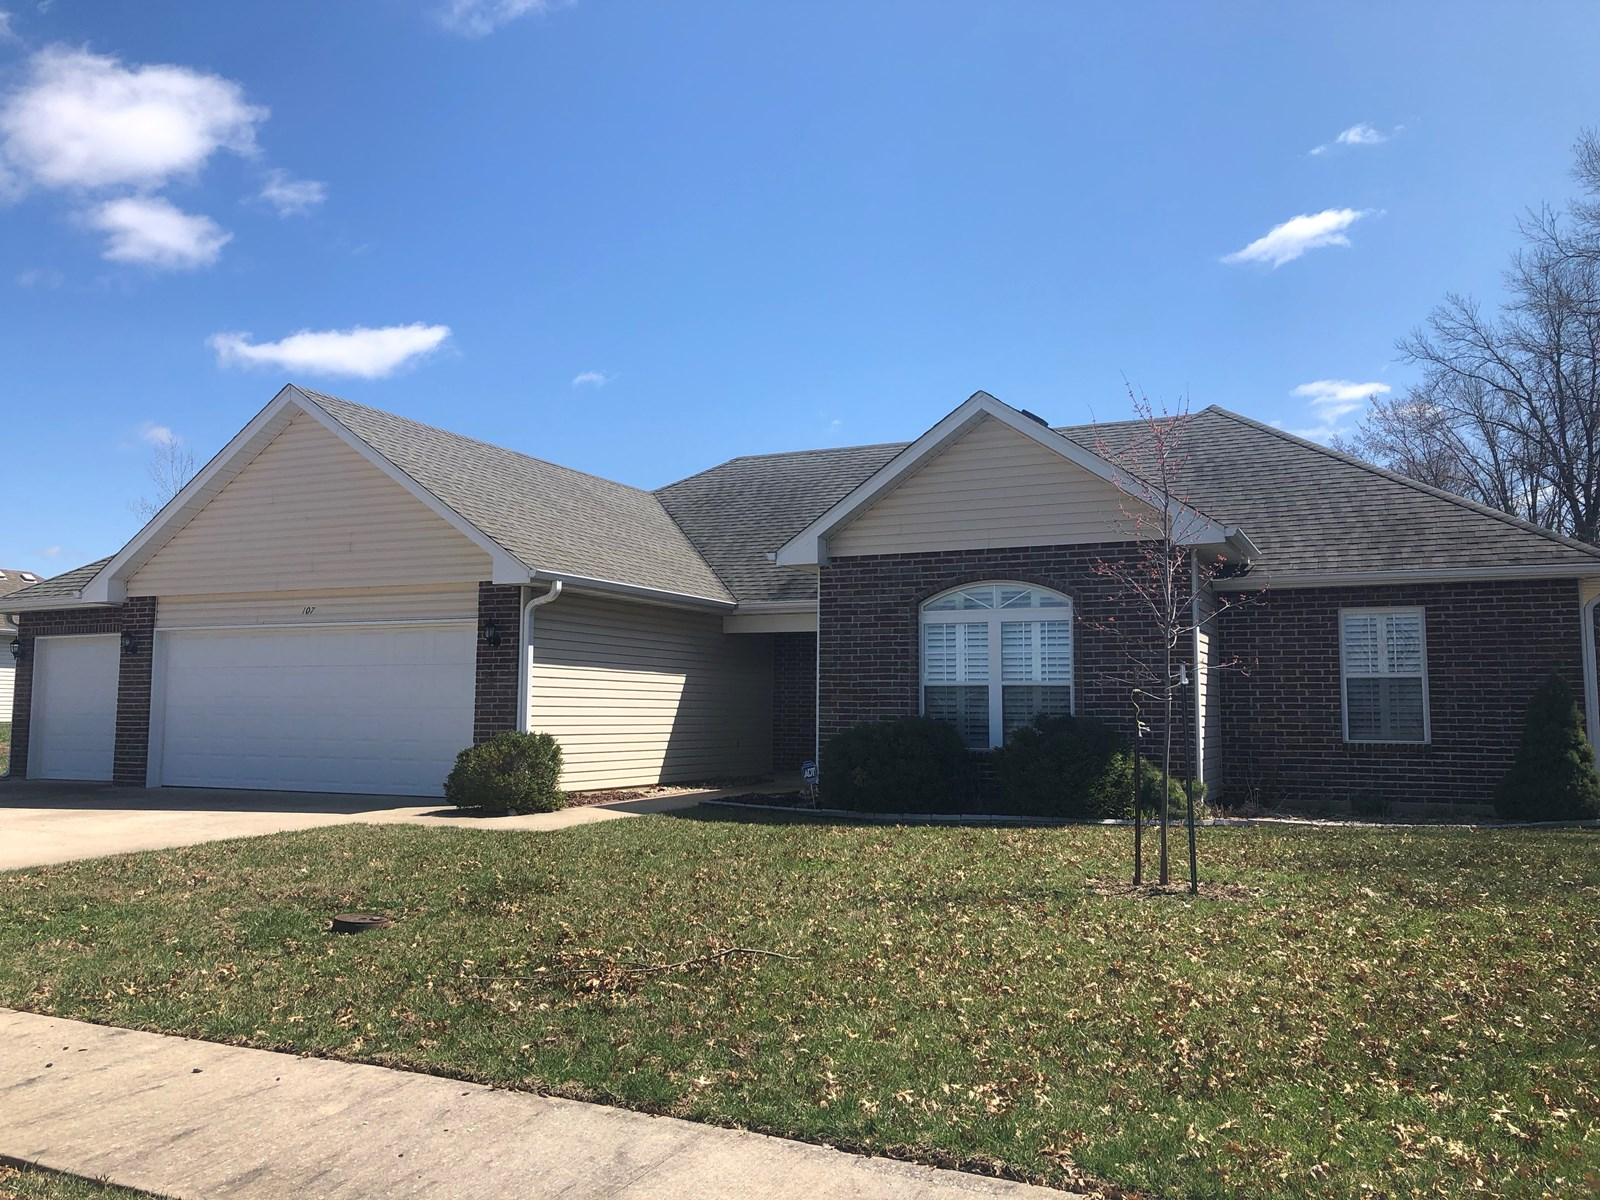 3 BR, 2 BA Hallsville School District Boone County MO